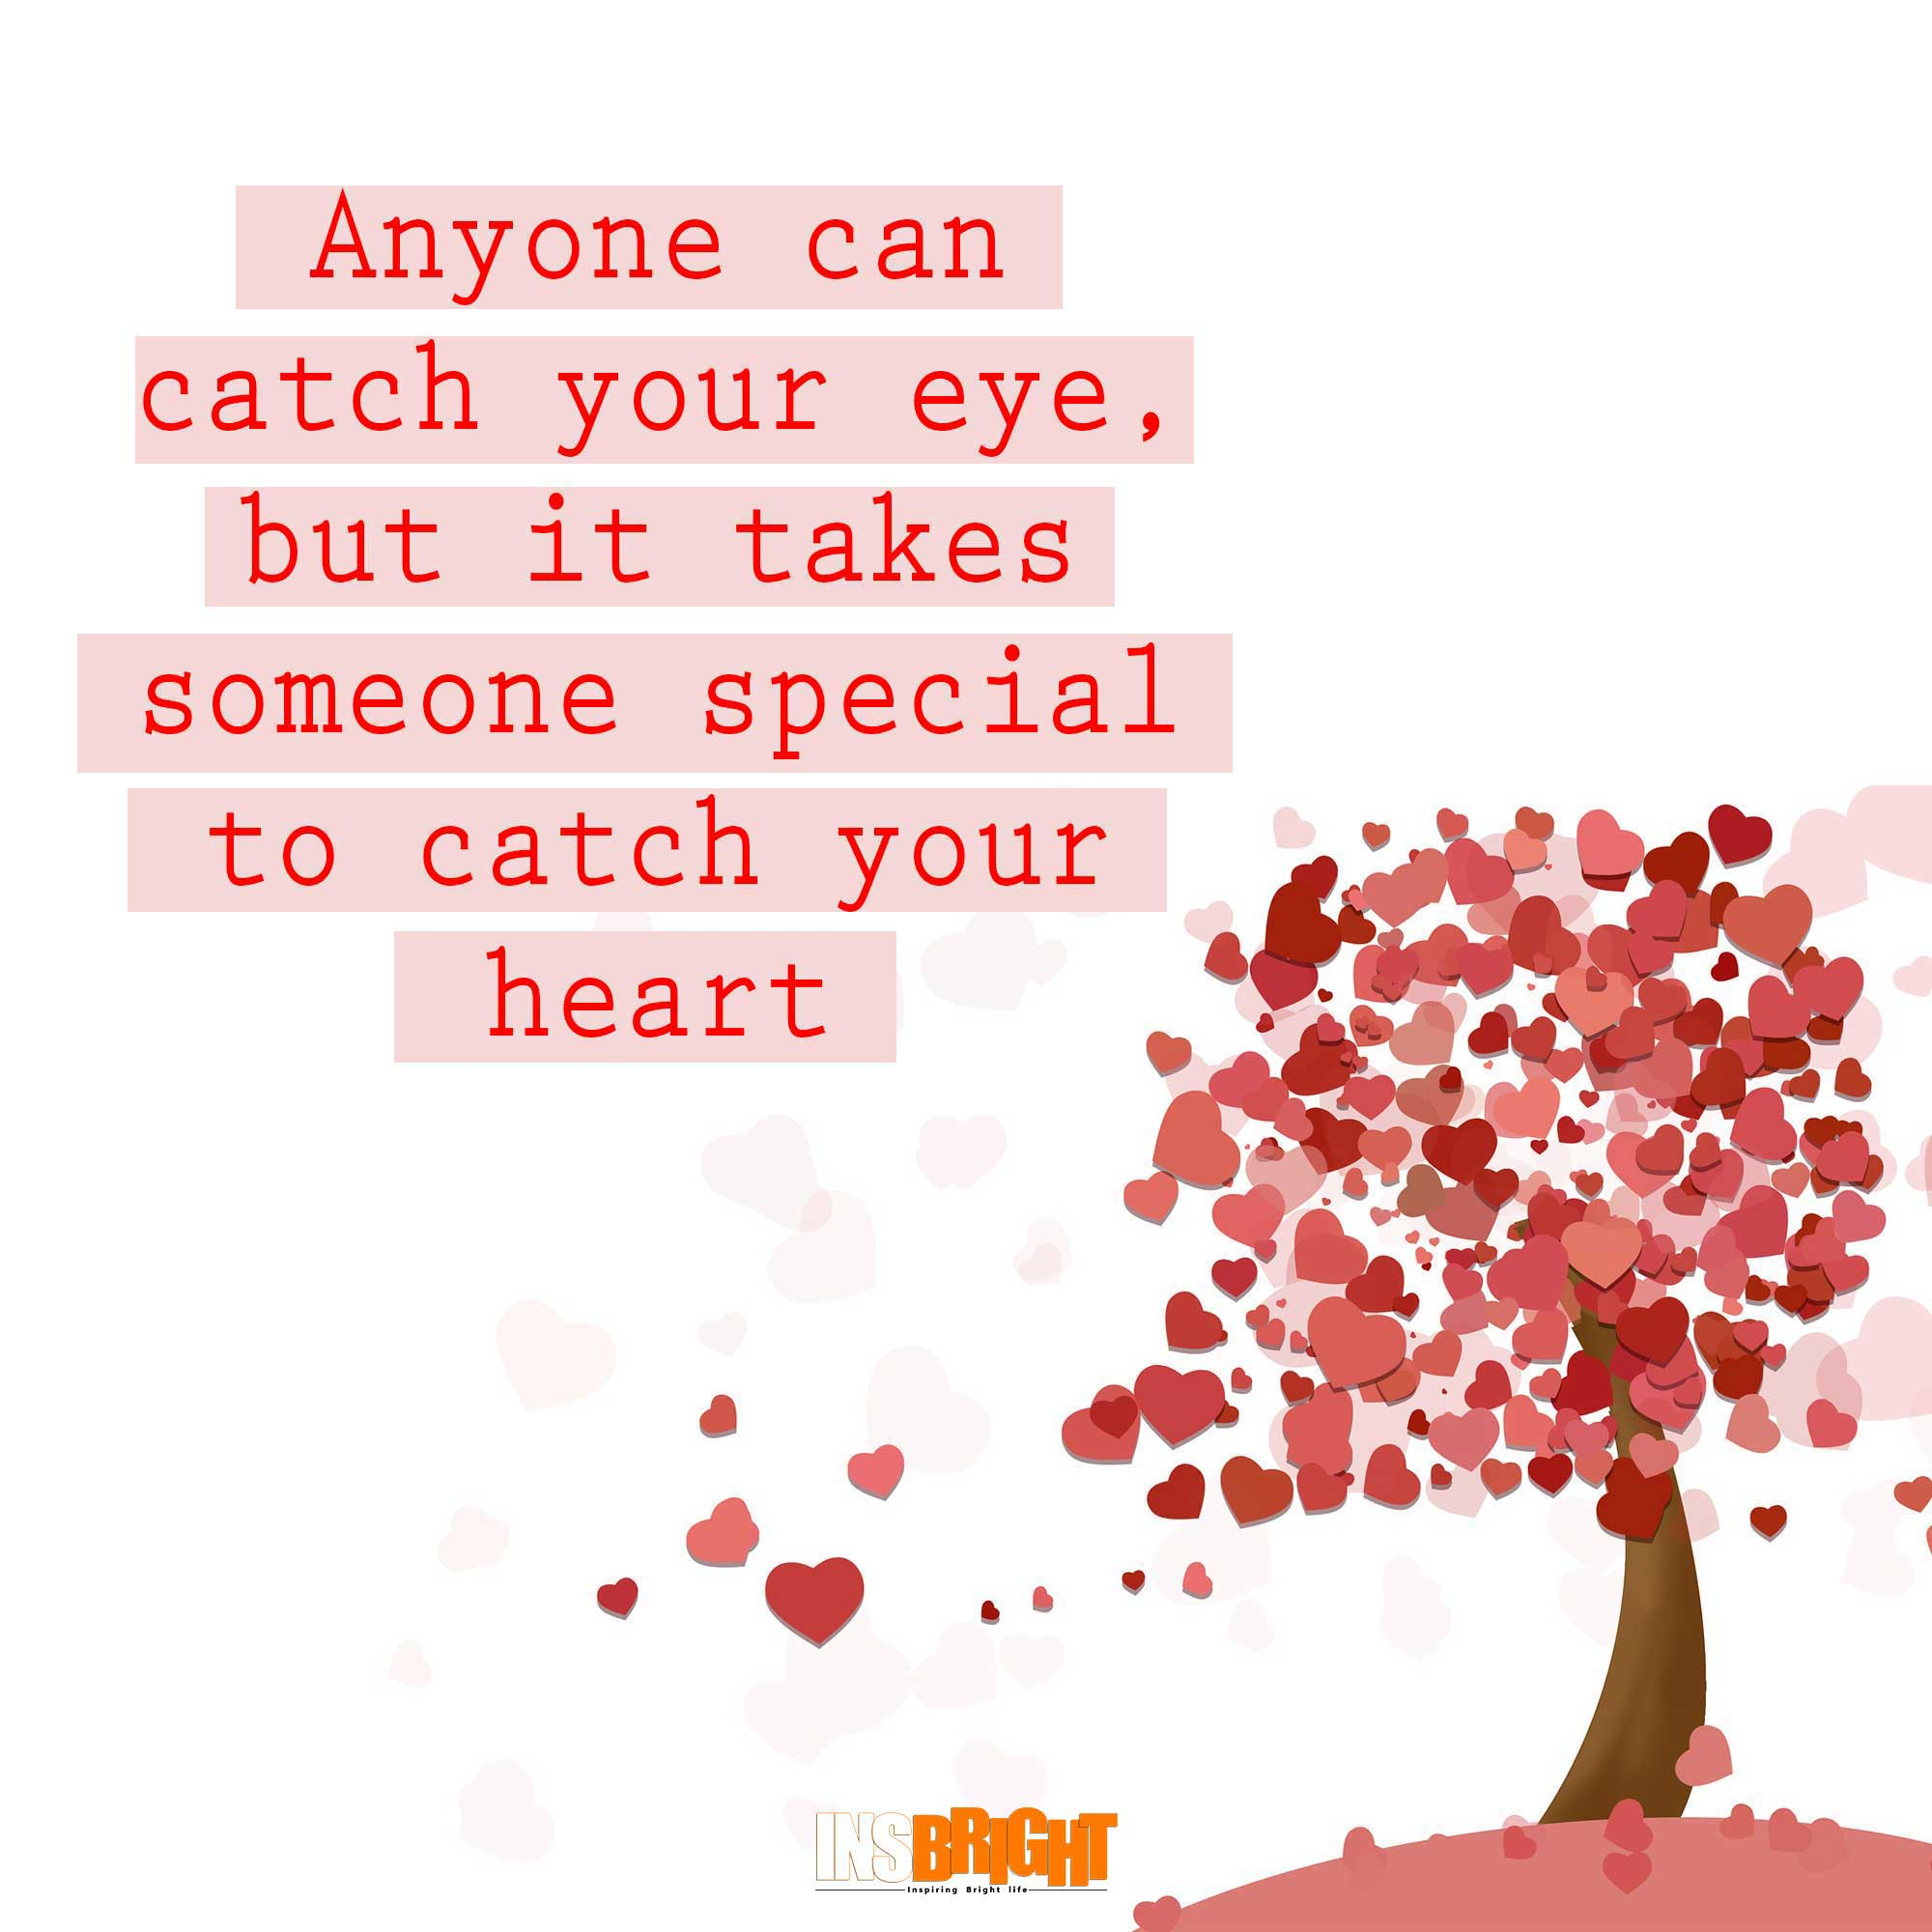 Valentines Quotes For Her Fascinating Cute Happy Valentines Day Quotes With Images For Him Or Her Or